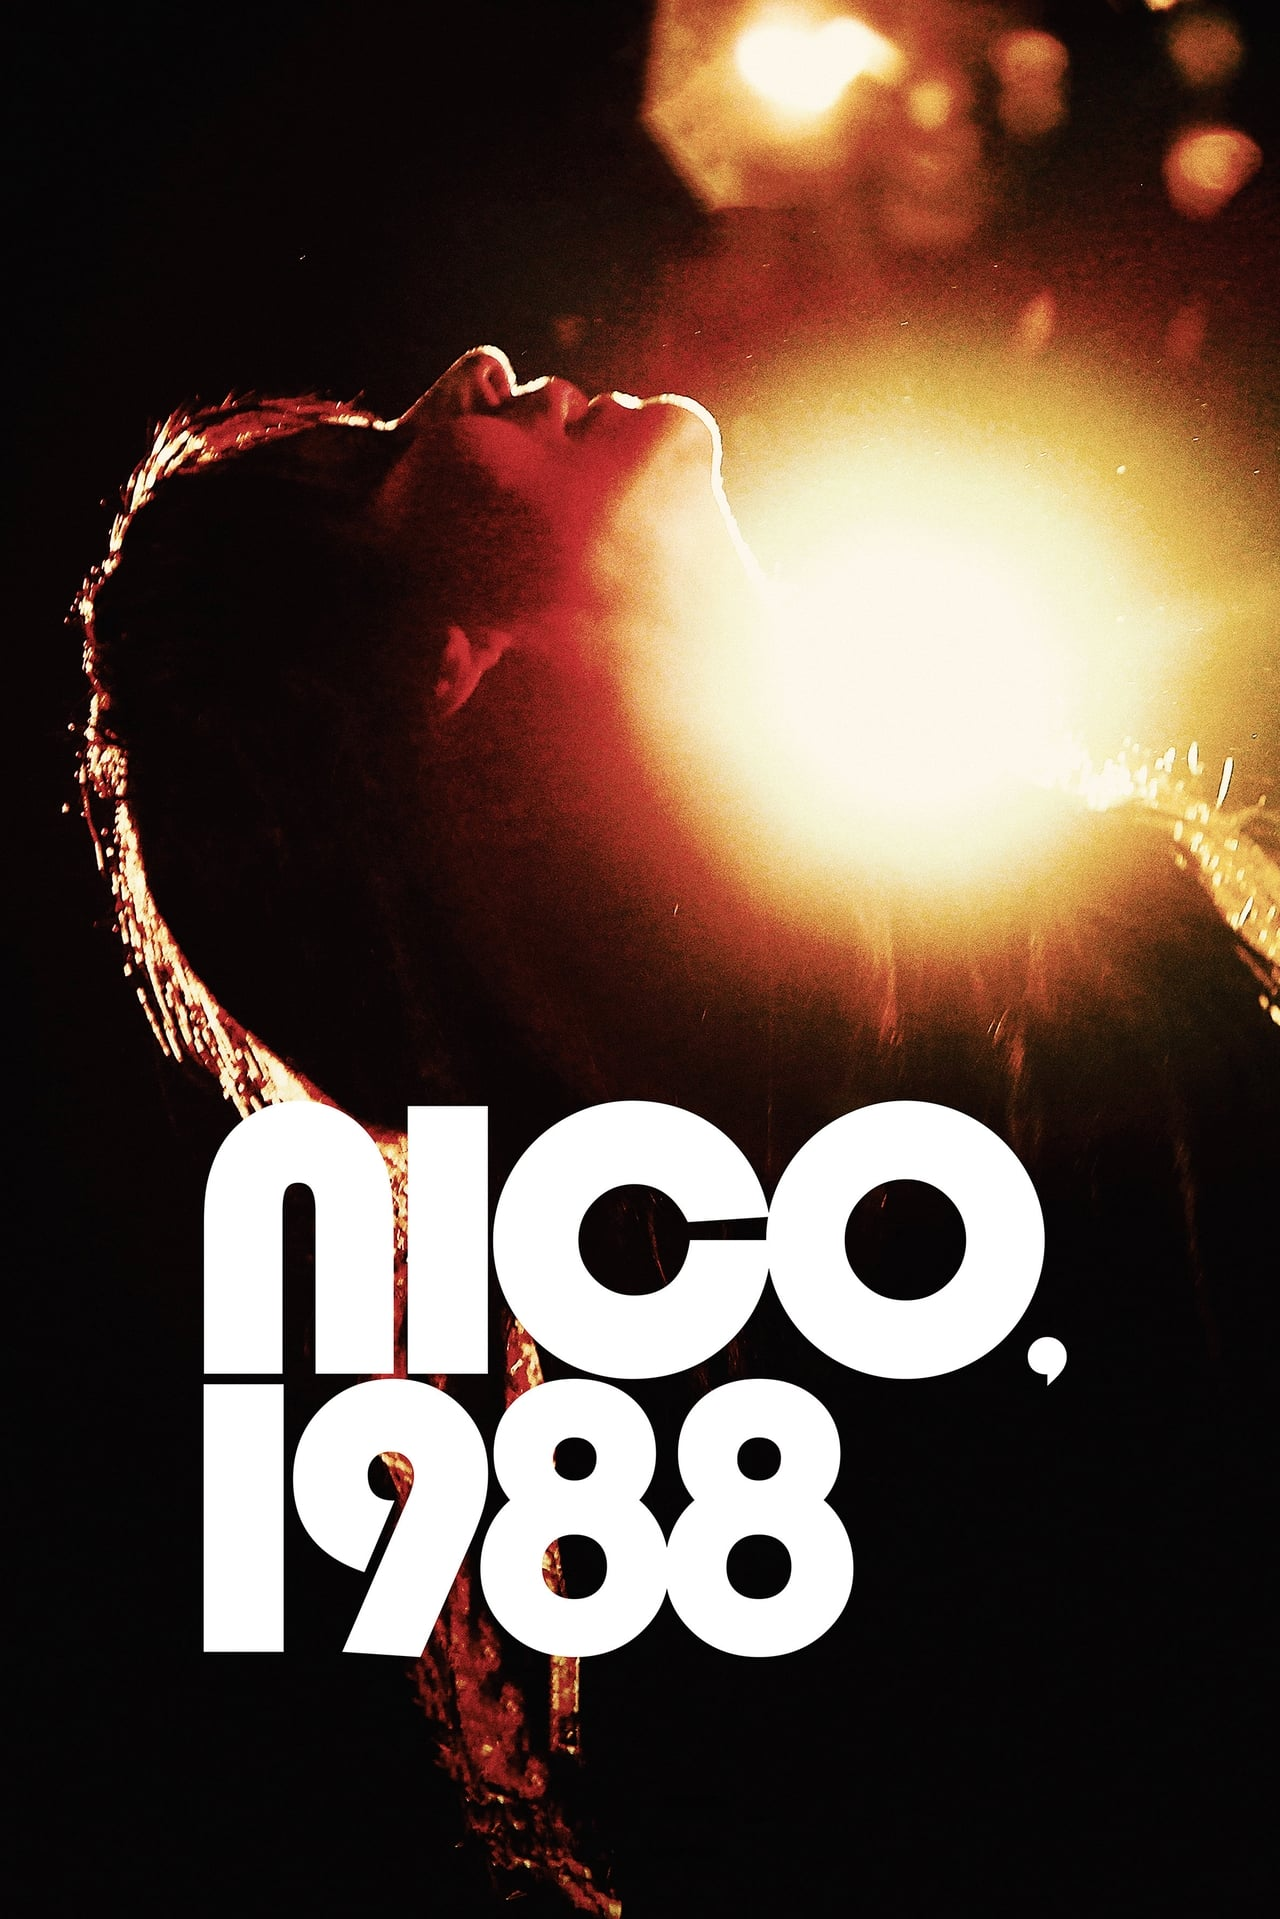 Nico, 1988 (2018) putlockers cafe